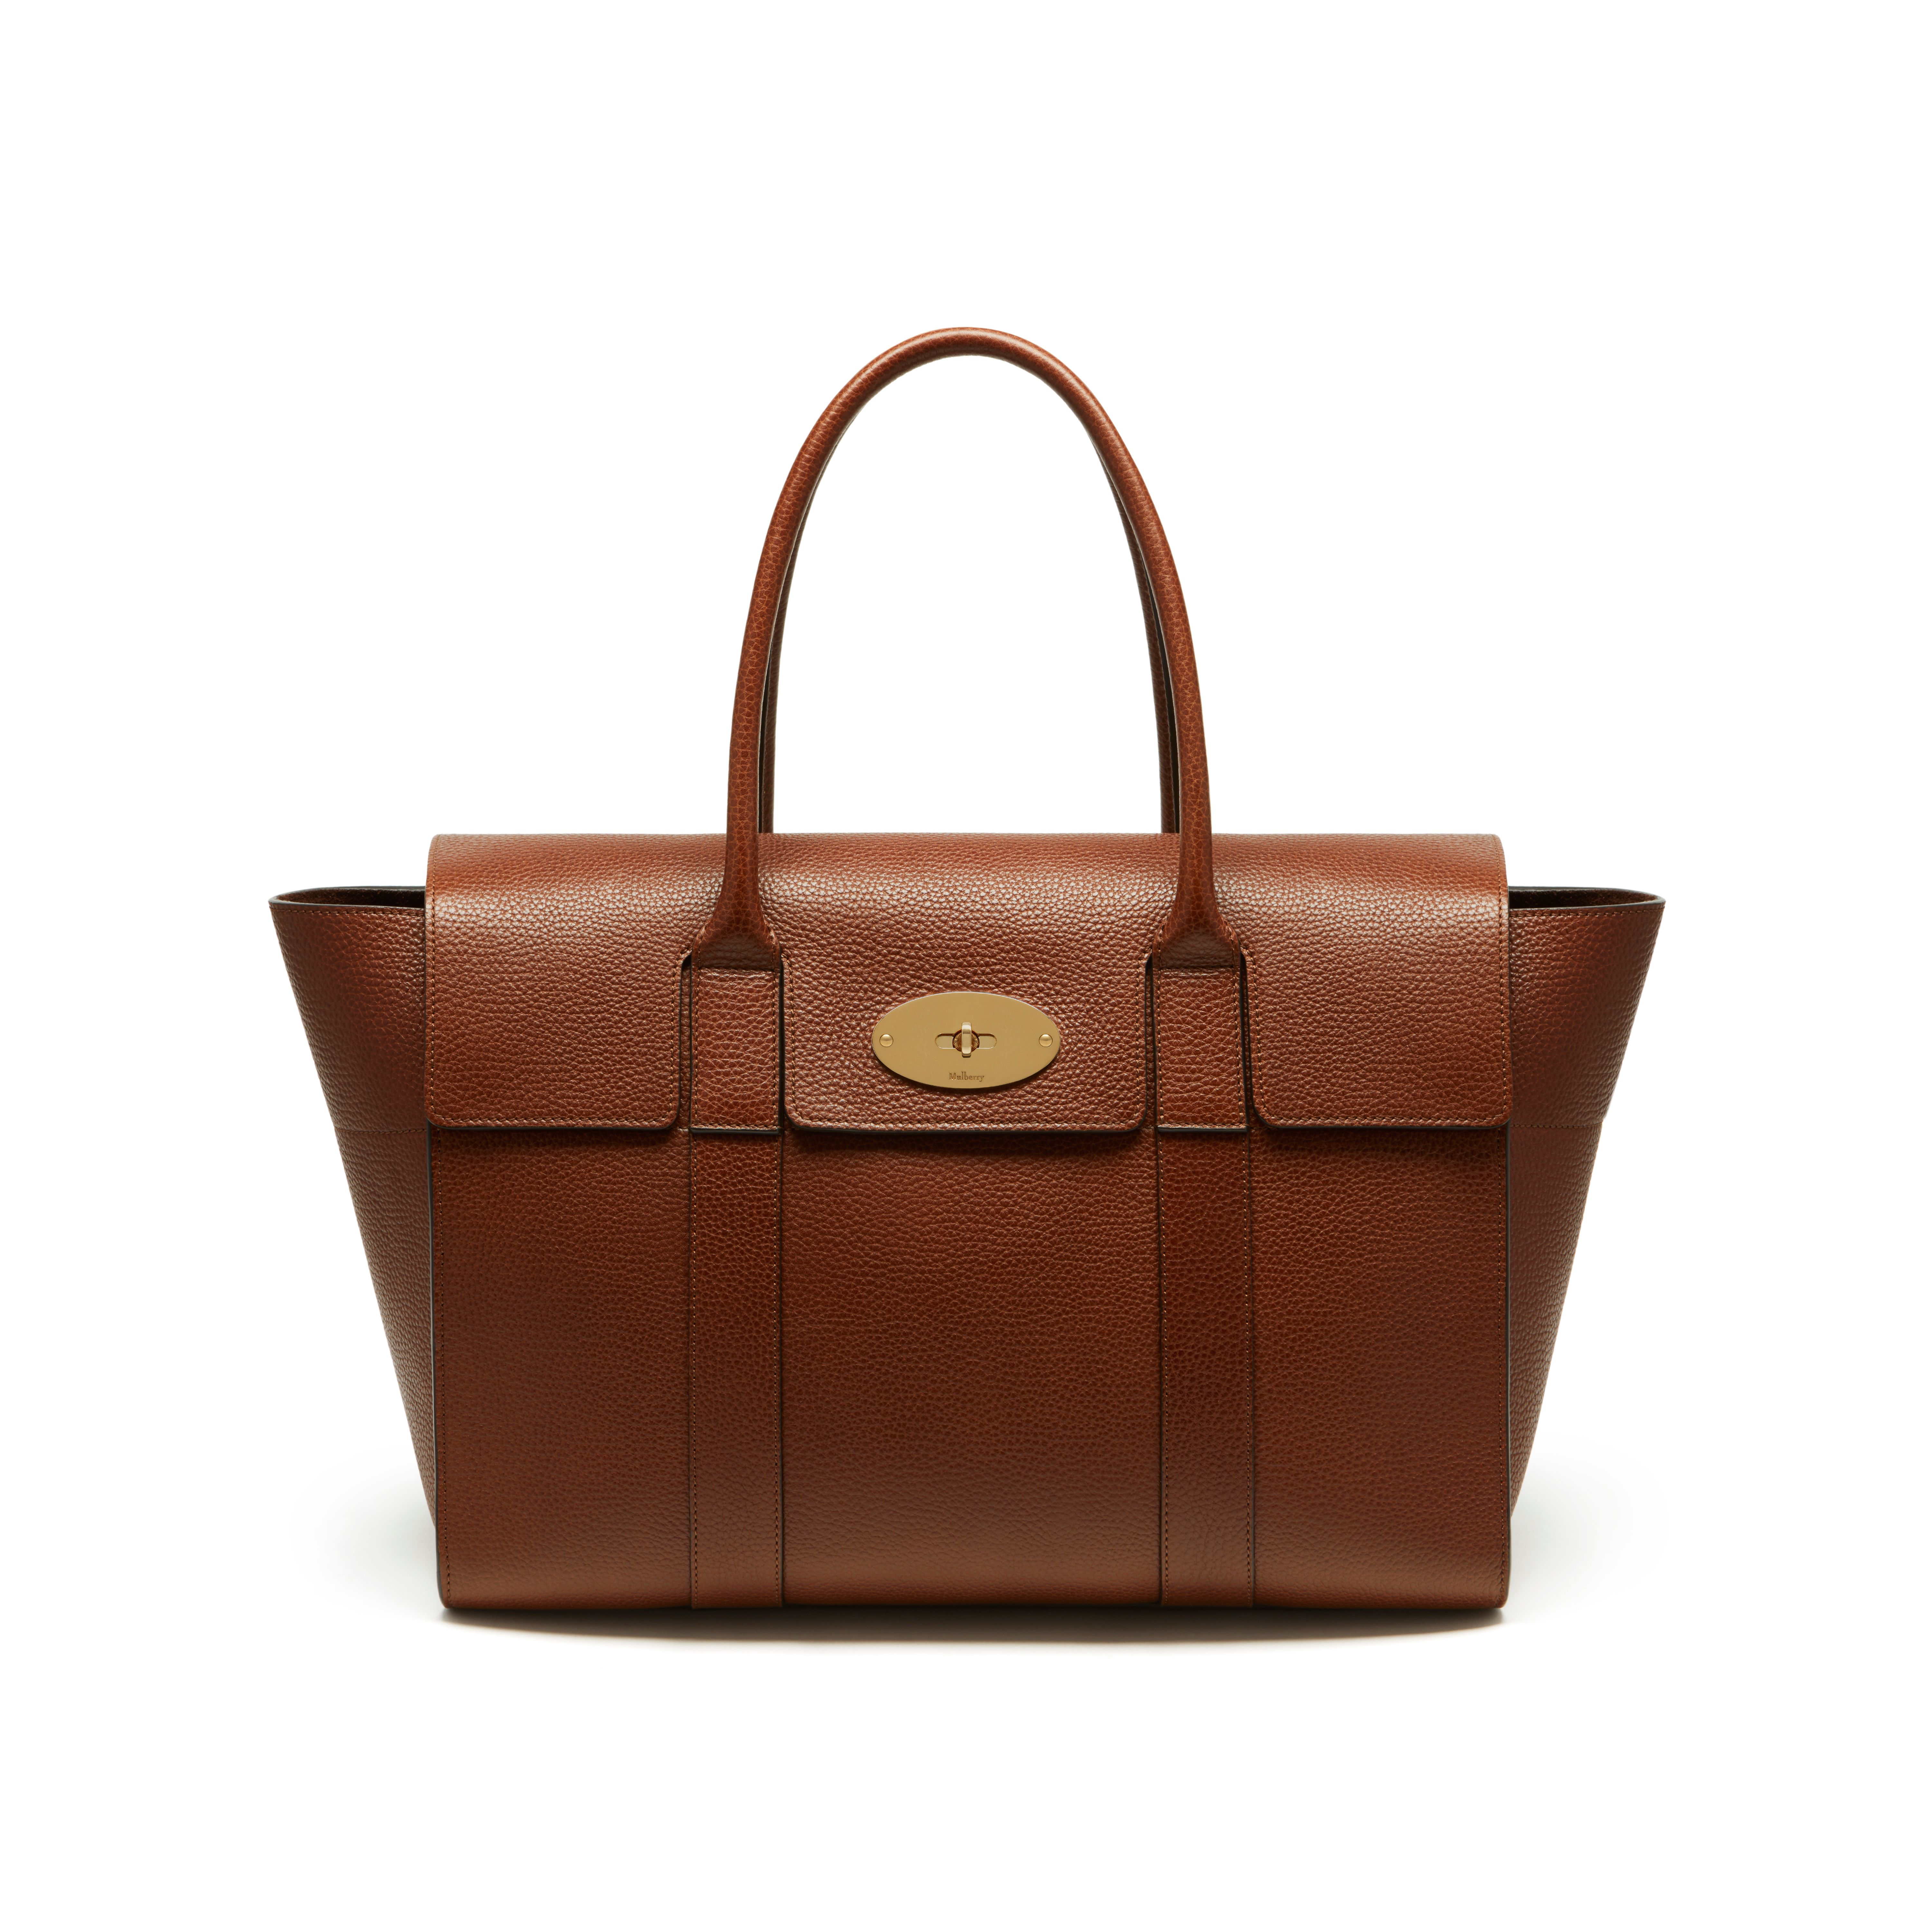 Mulberry new bayswater leather bag in brown oak lyst for The bayswater